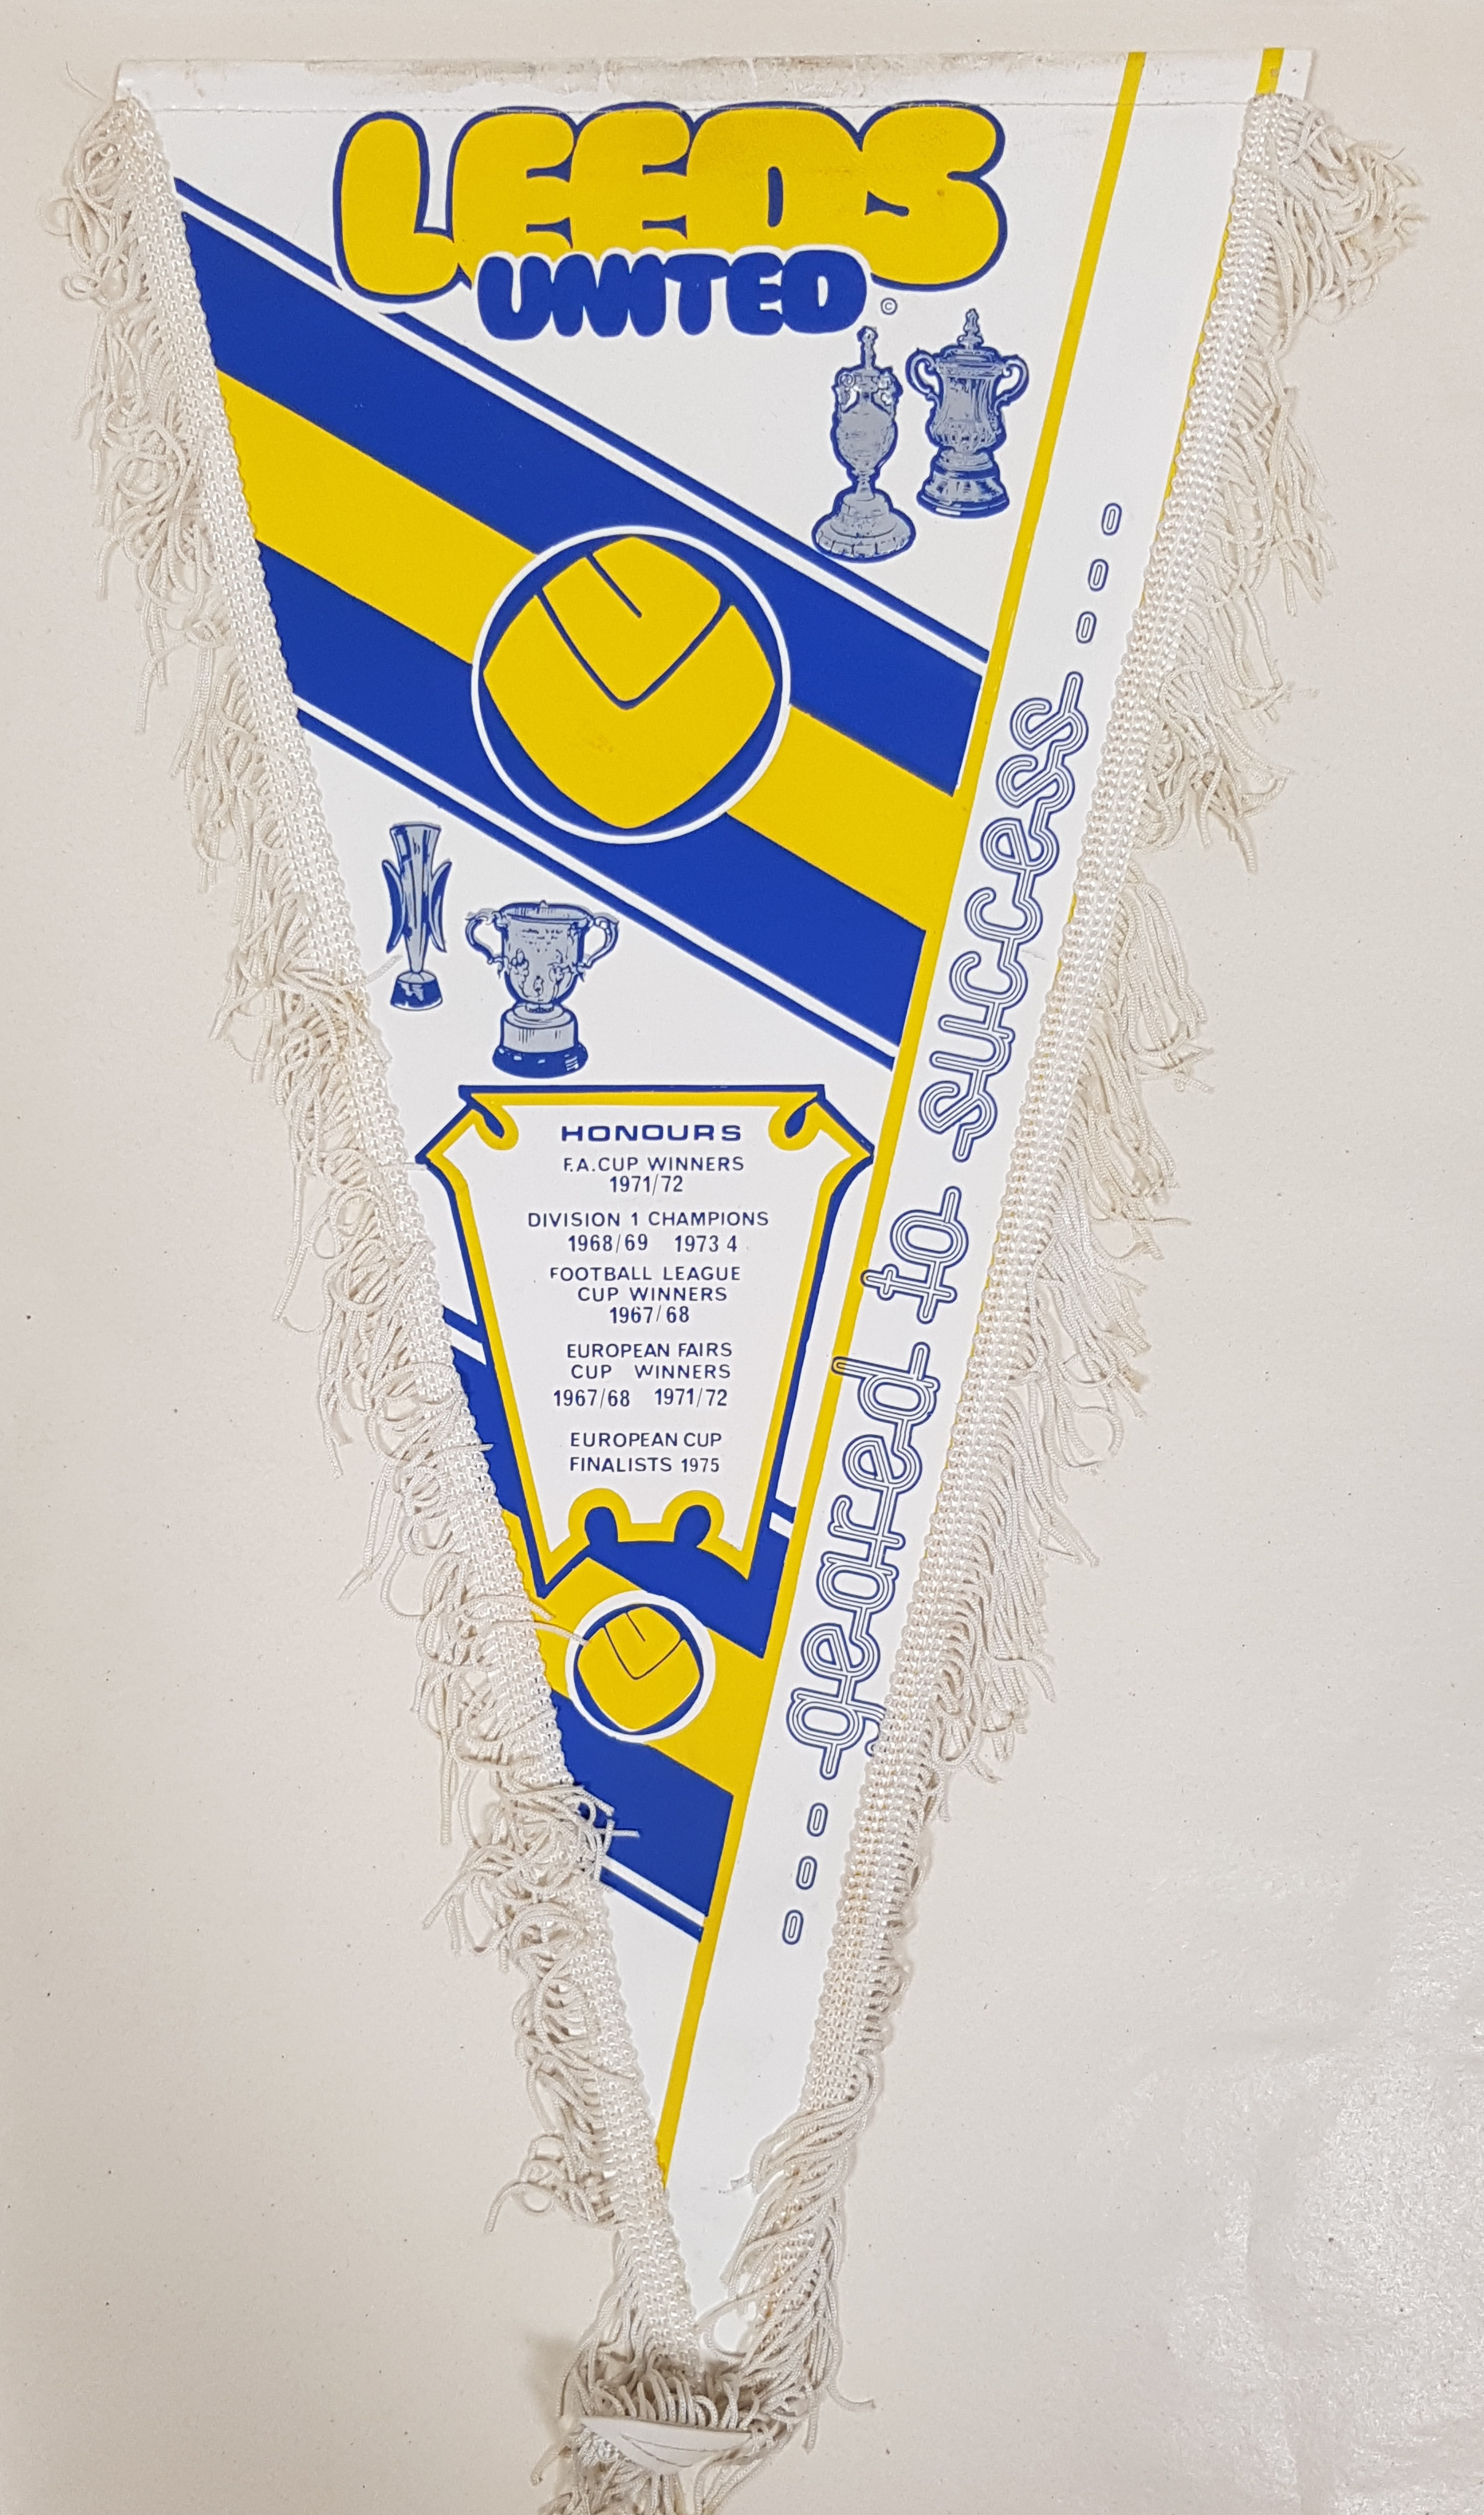 Pennant with a white background and a design in blue and yellow